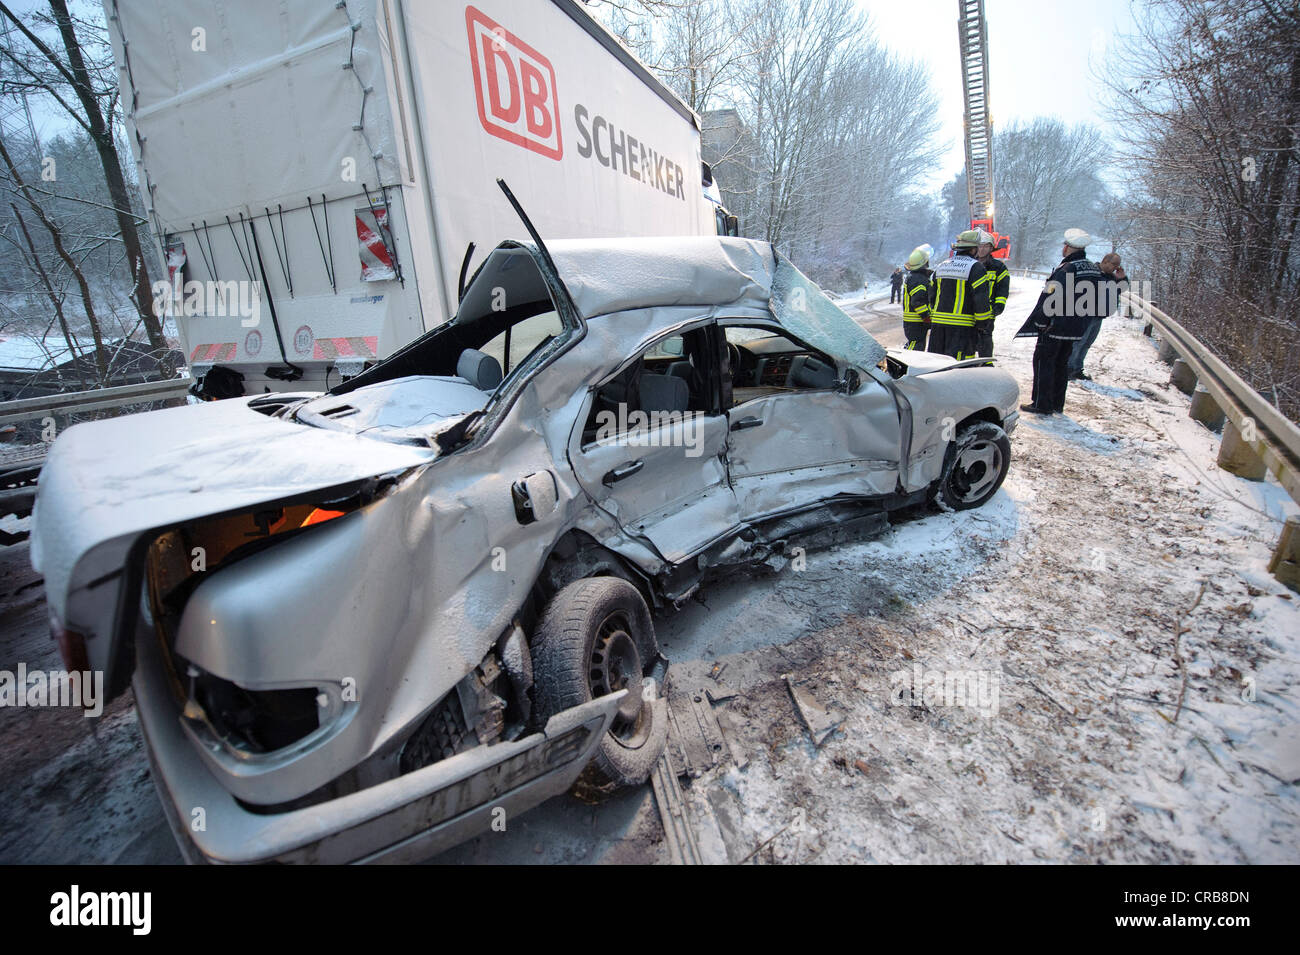 fatal car accident on the slippery snow of an icy road an e class